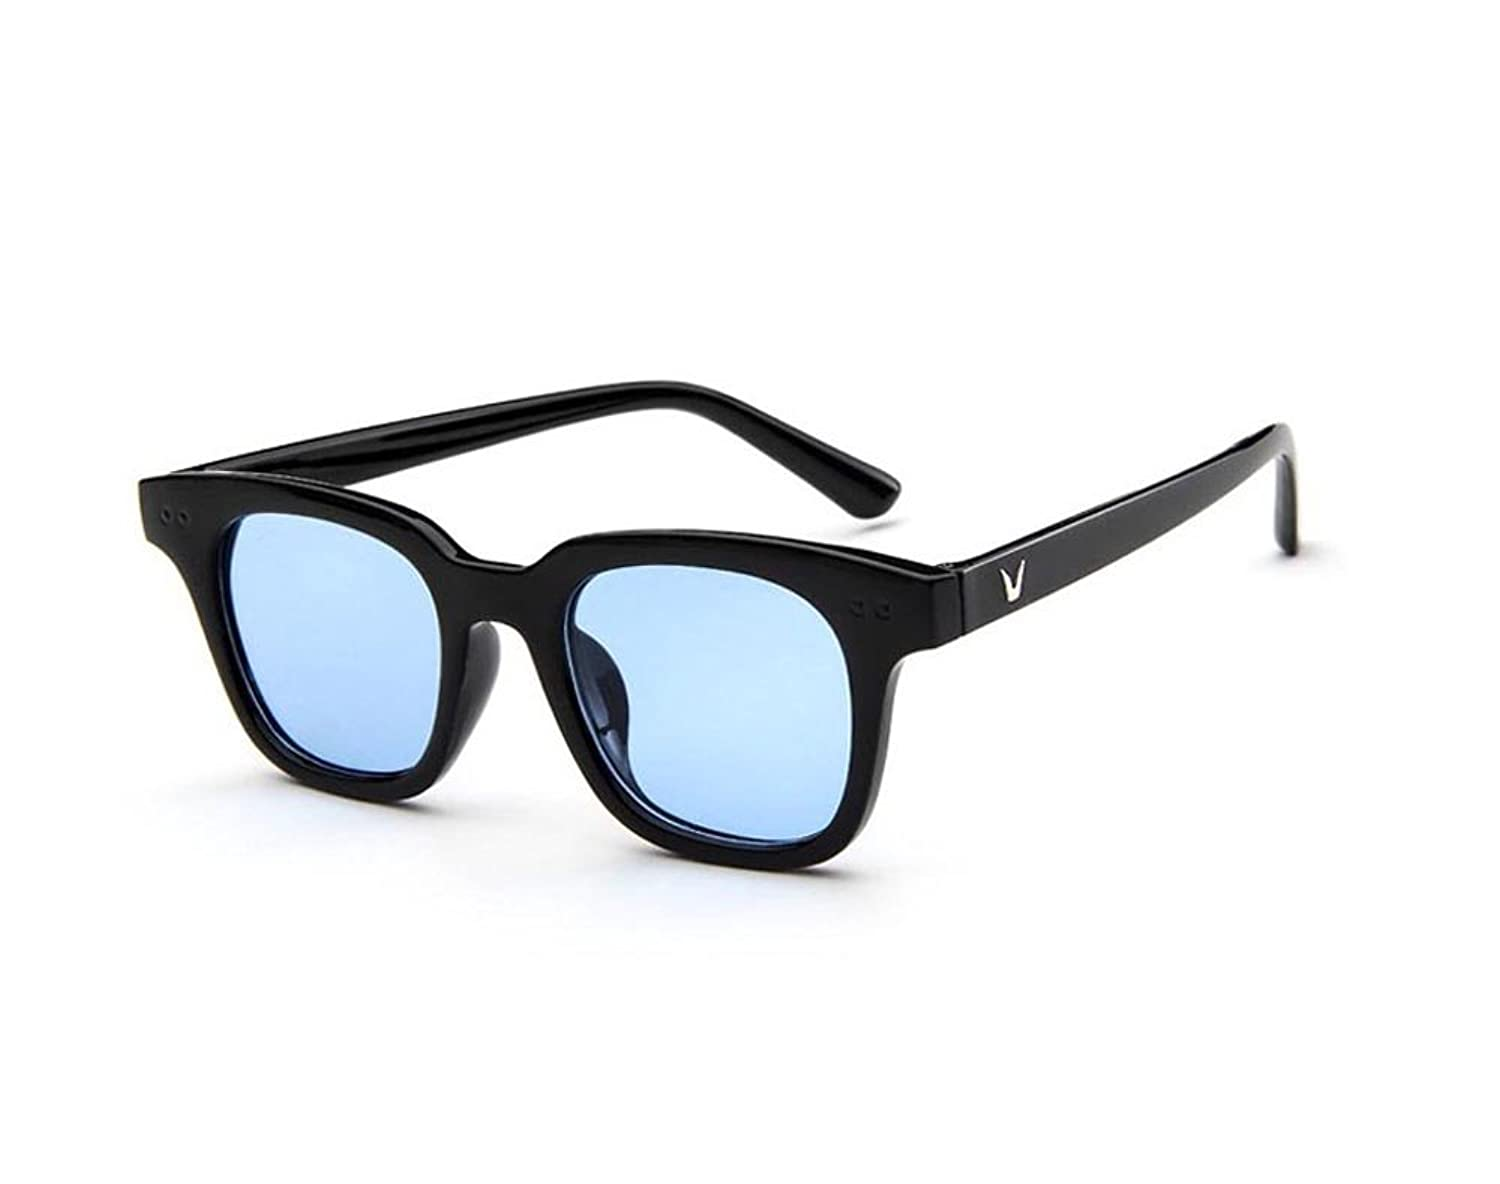 Tou che Korea retro fashion sunglasses sunglasses sheet transparent ocean